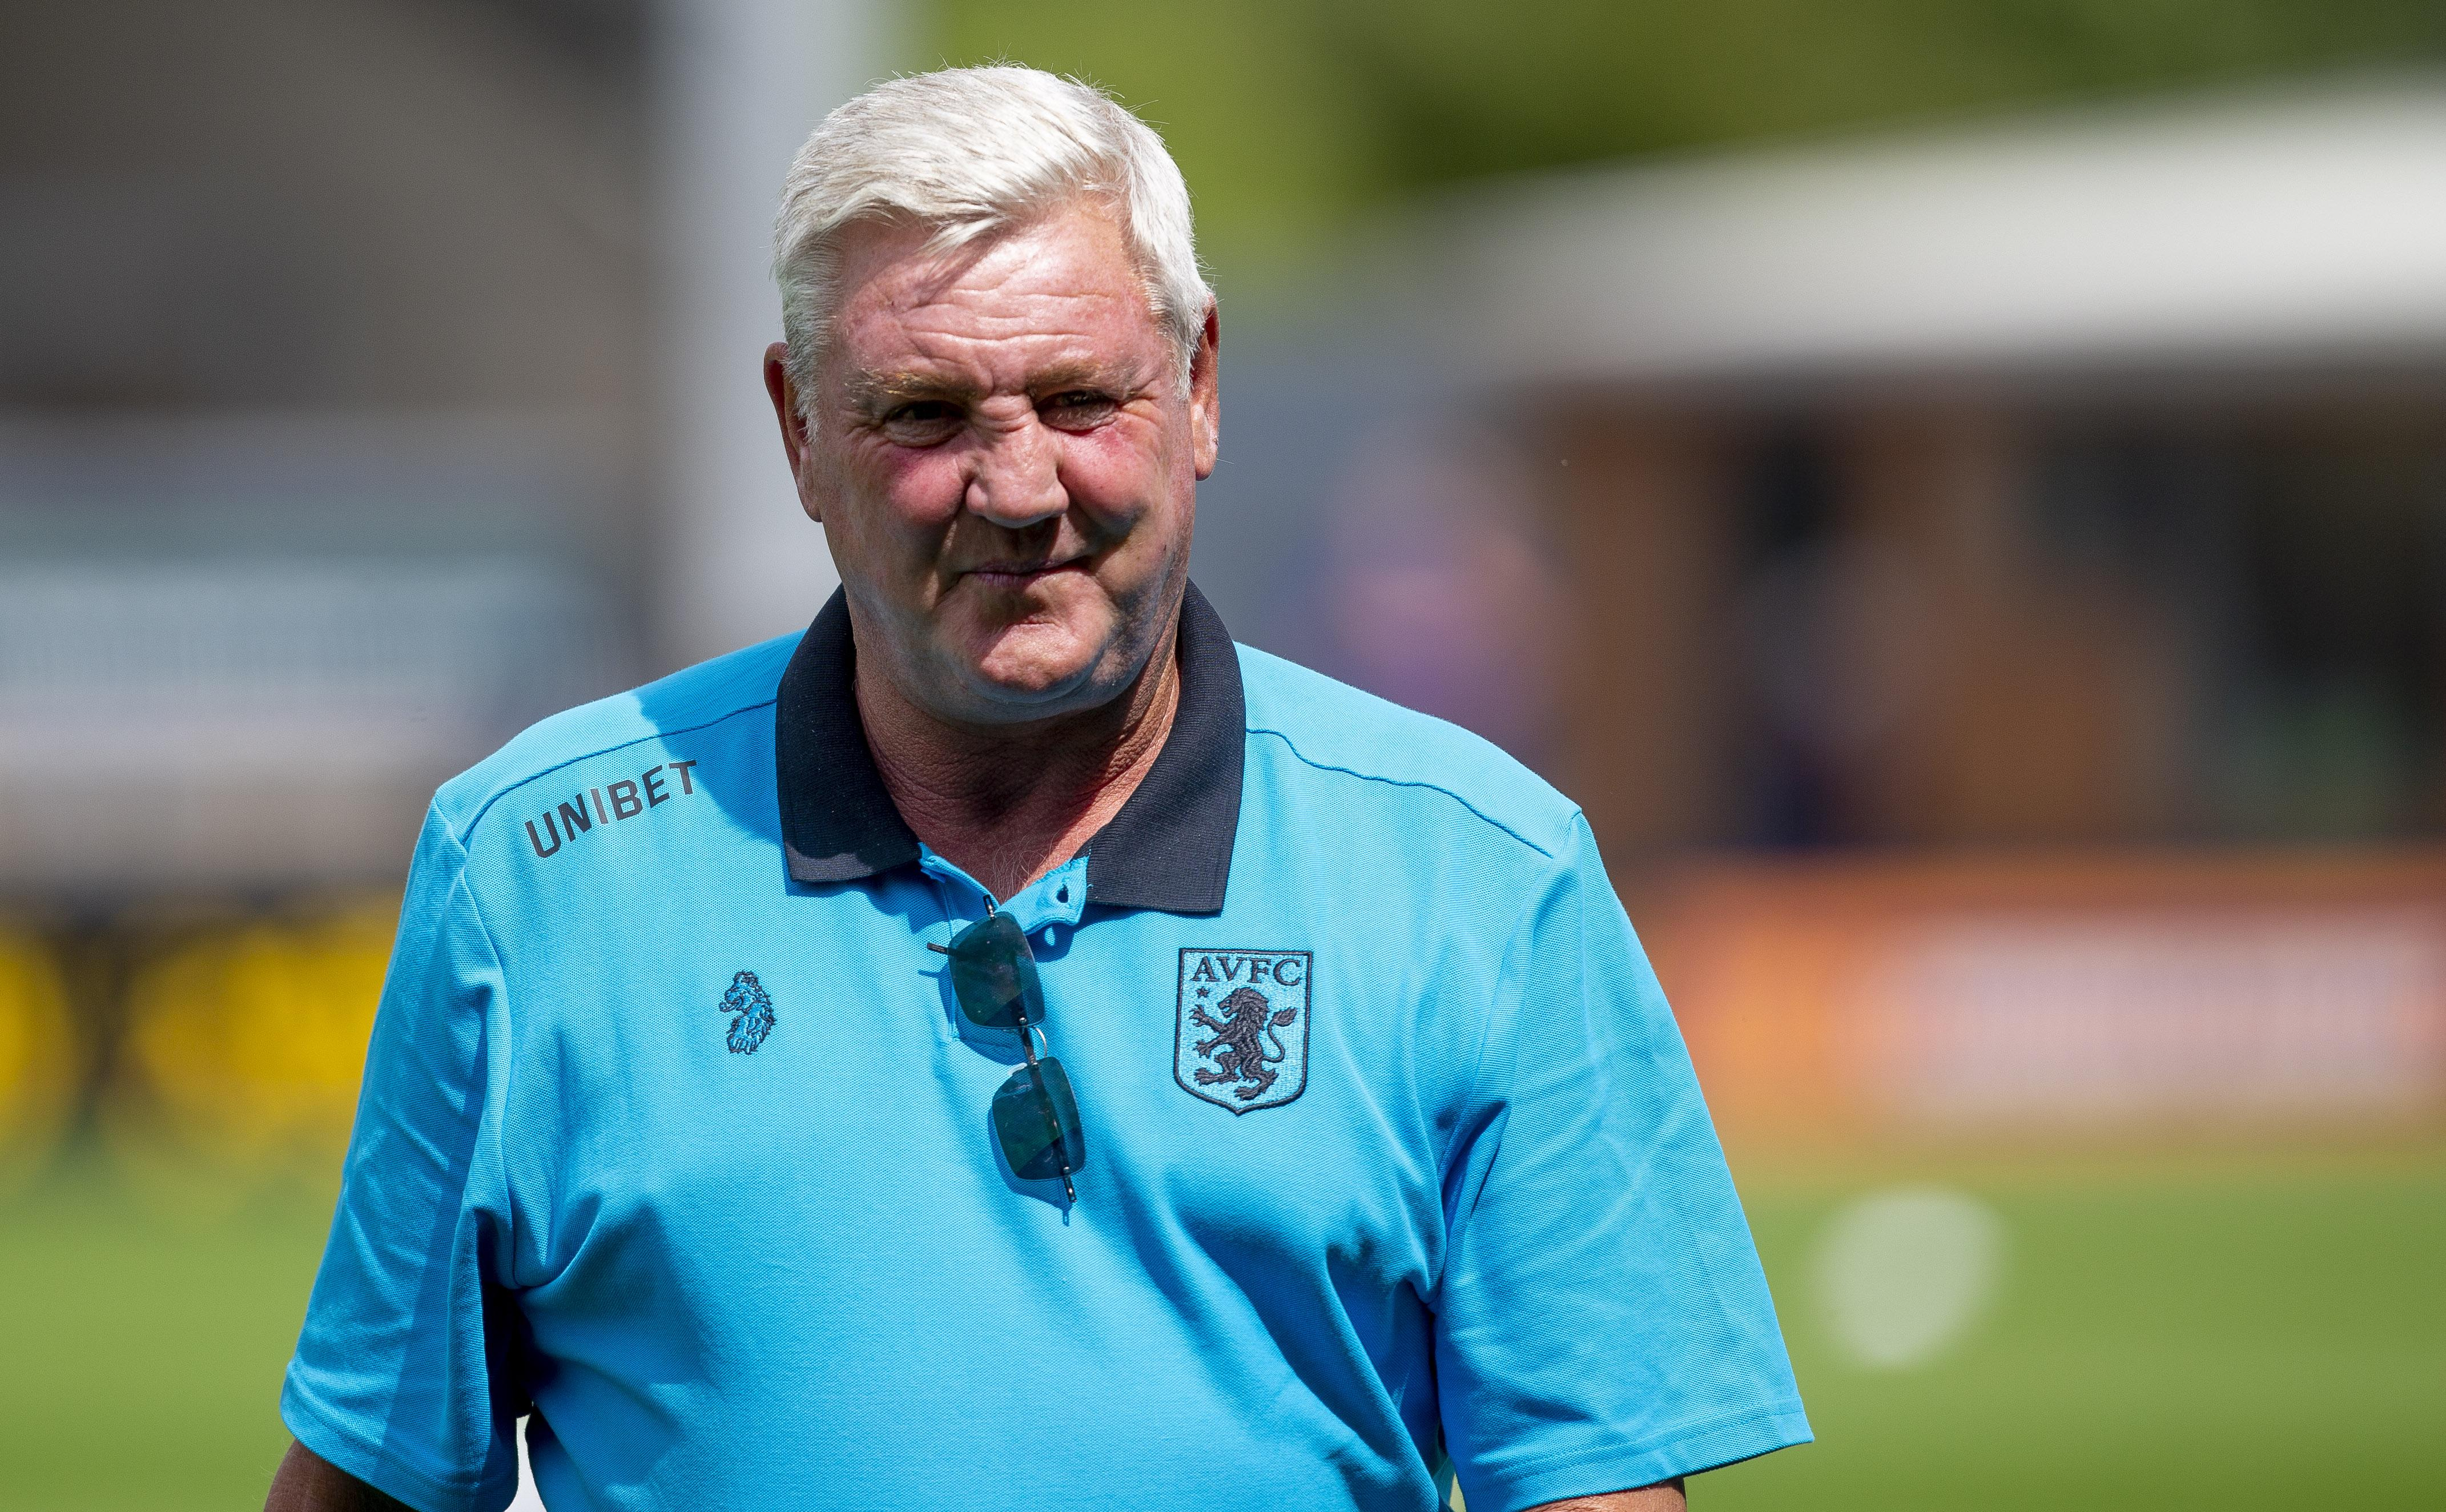 Villa are the eighth club of Bruce's managerial career, which began at Sheffield United in 1998